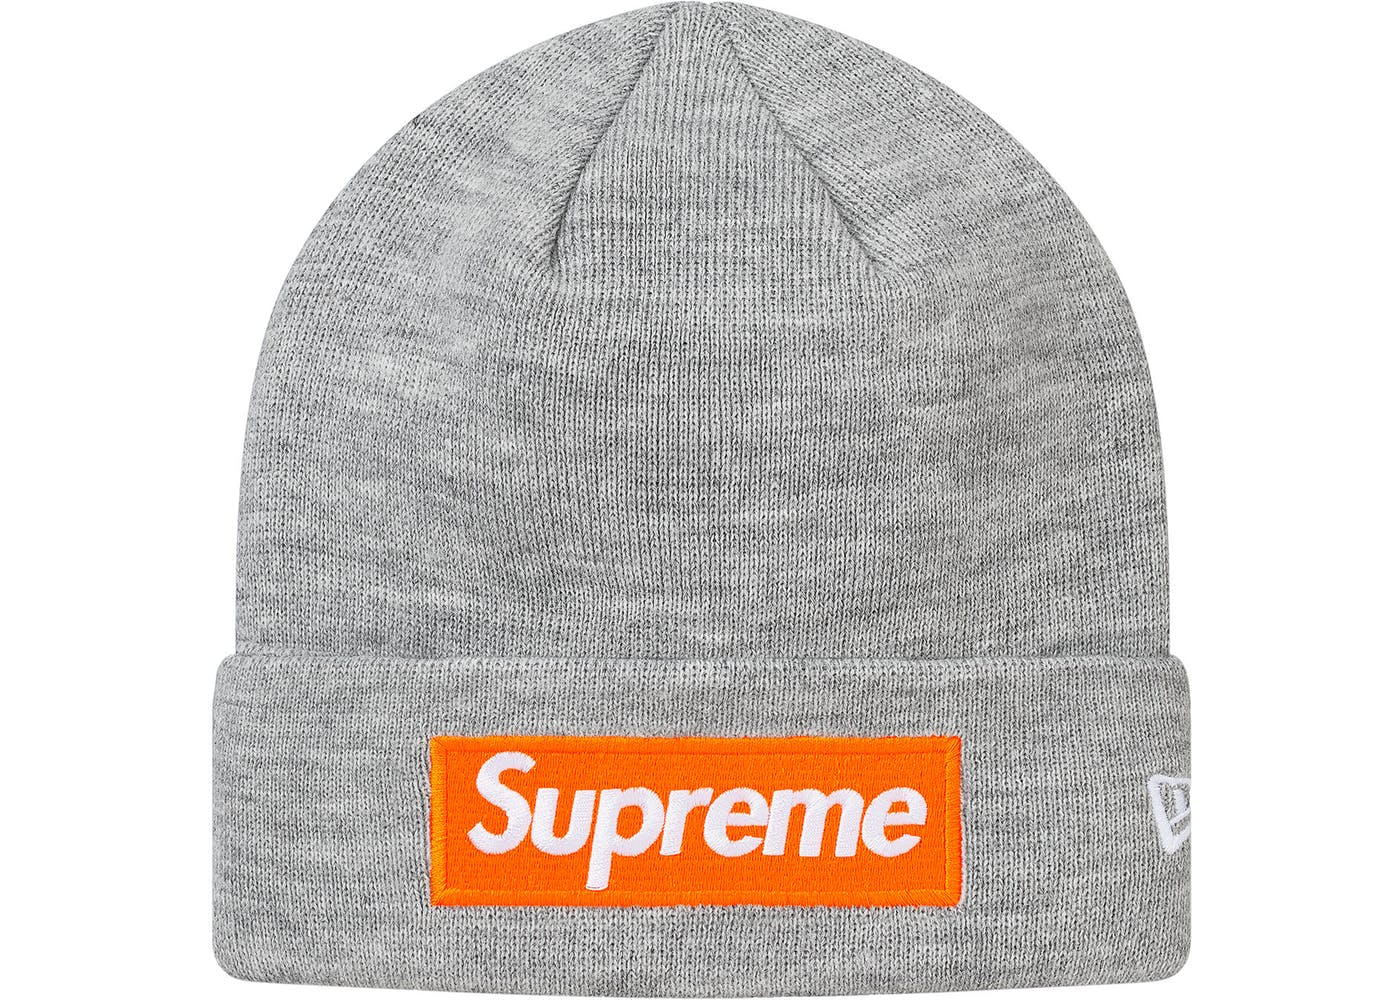 4e903bf0eb500 Supreme New Era Box Logo Beanie Heather Grey - StockX News